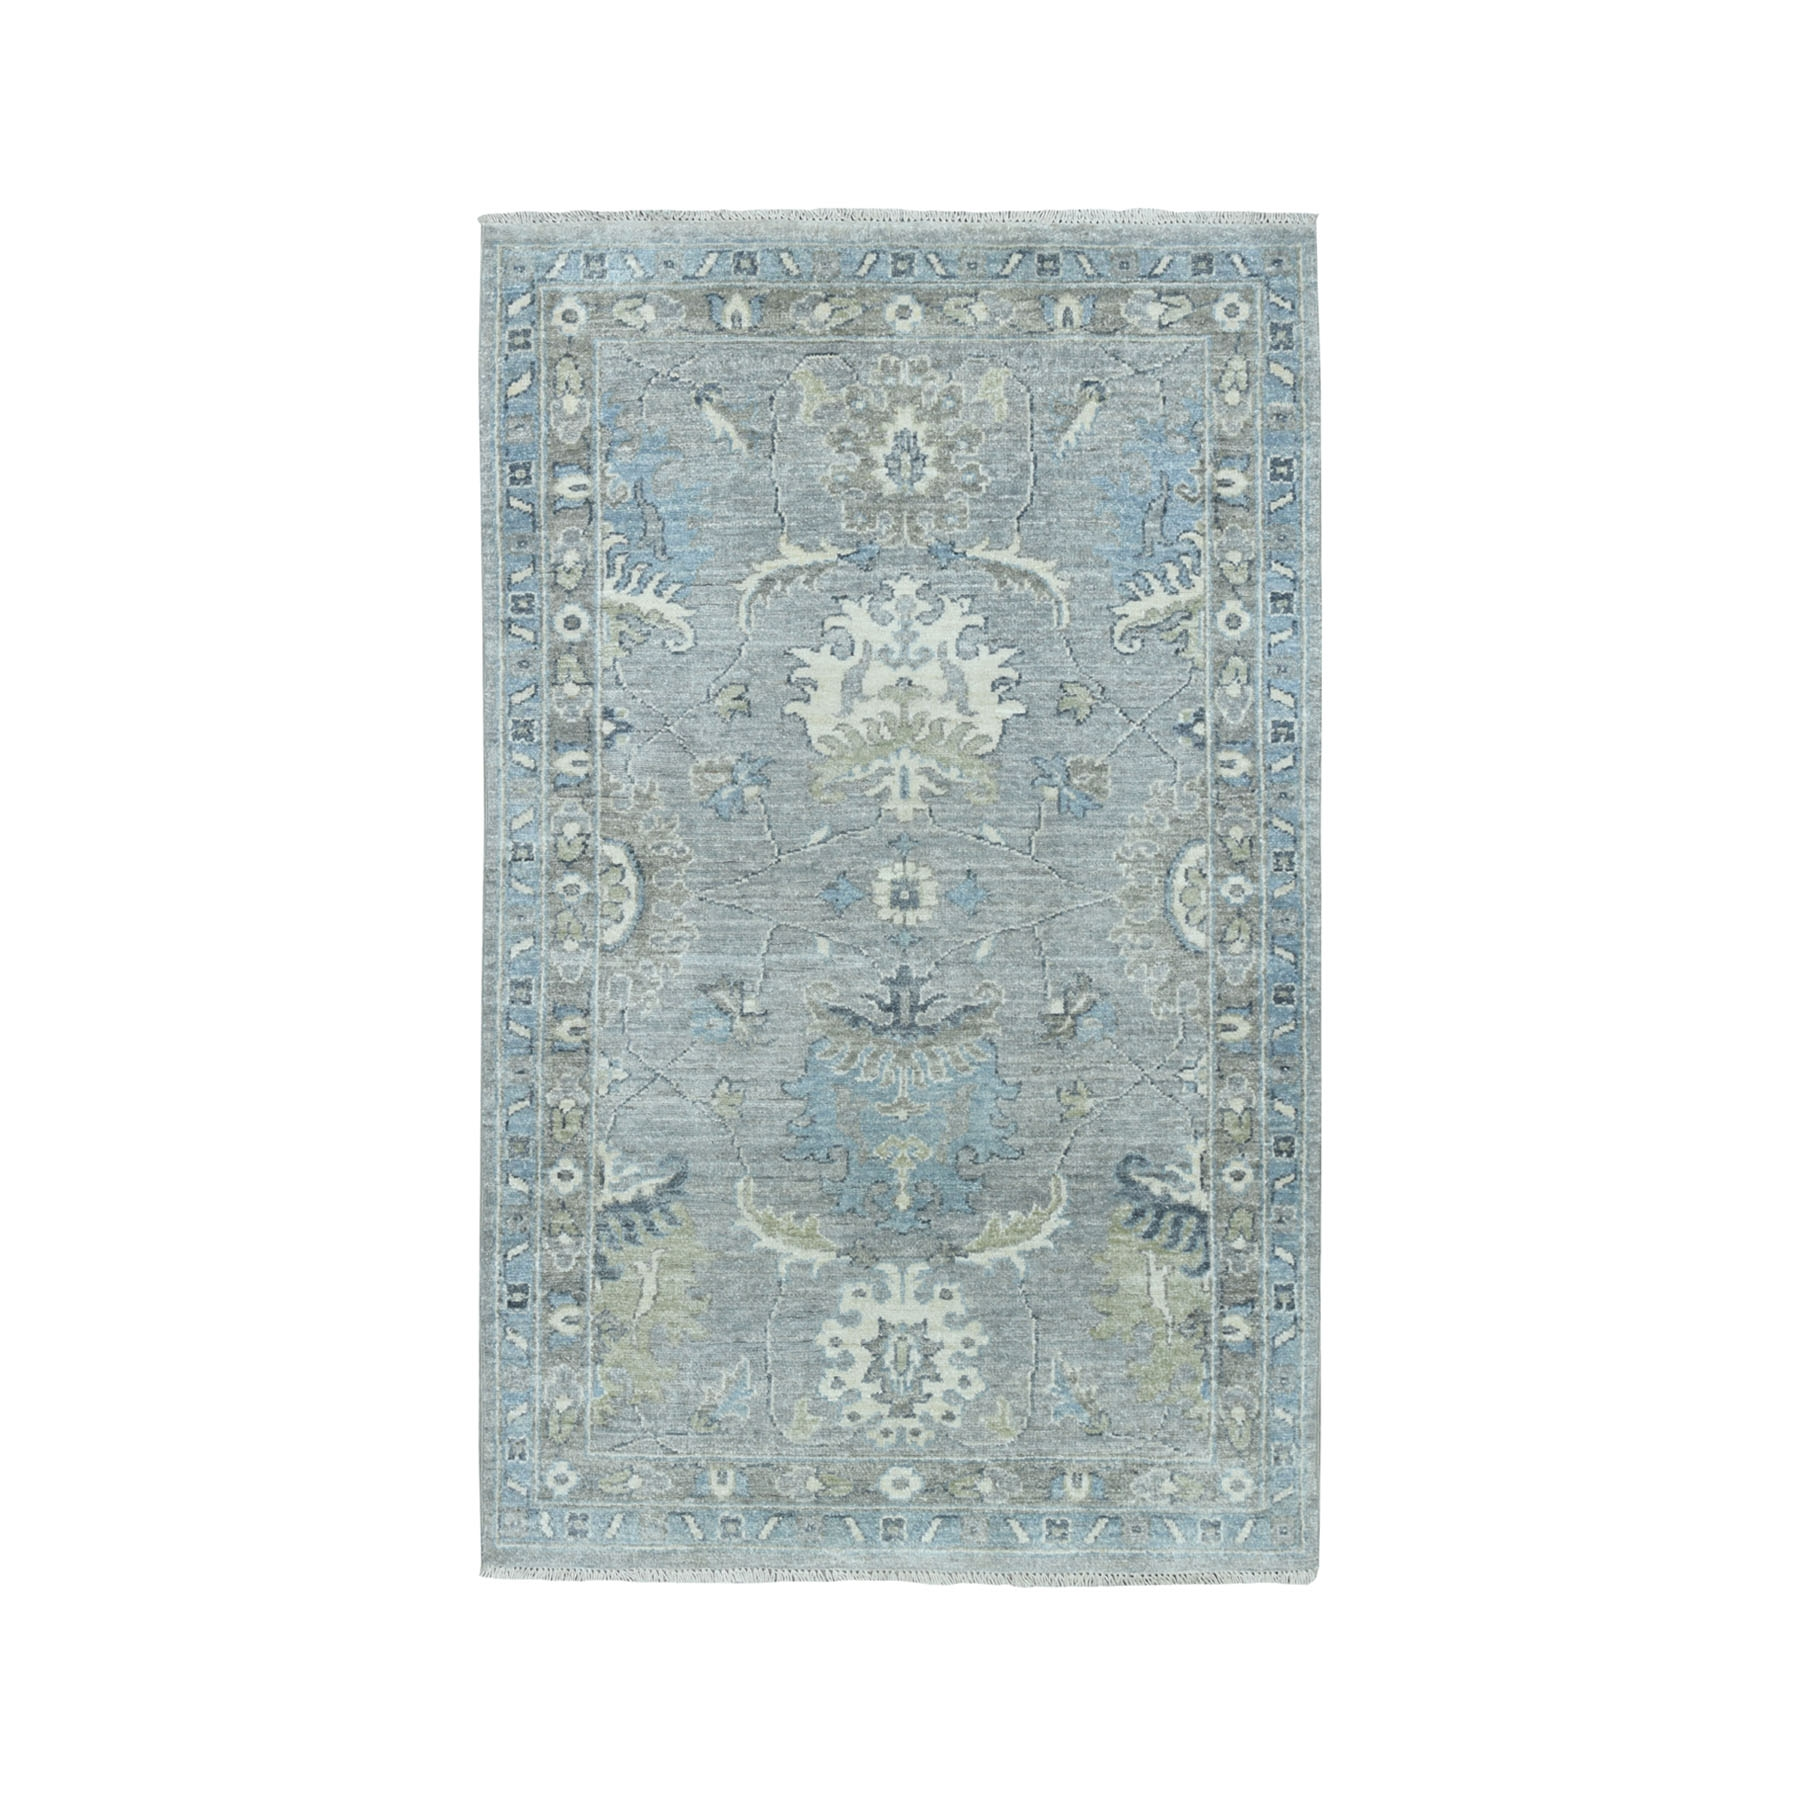 3'X5' White Wash Peshawar Pure Wool Hand-Knotted Oriental Rug moaeabe0